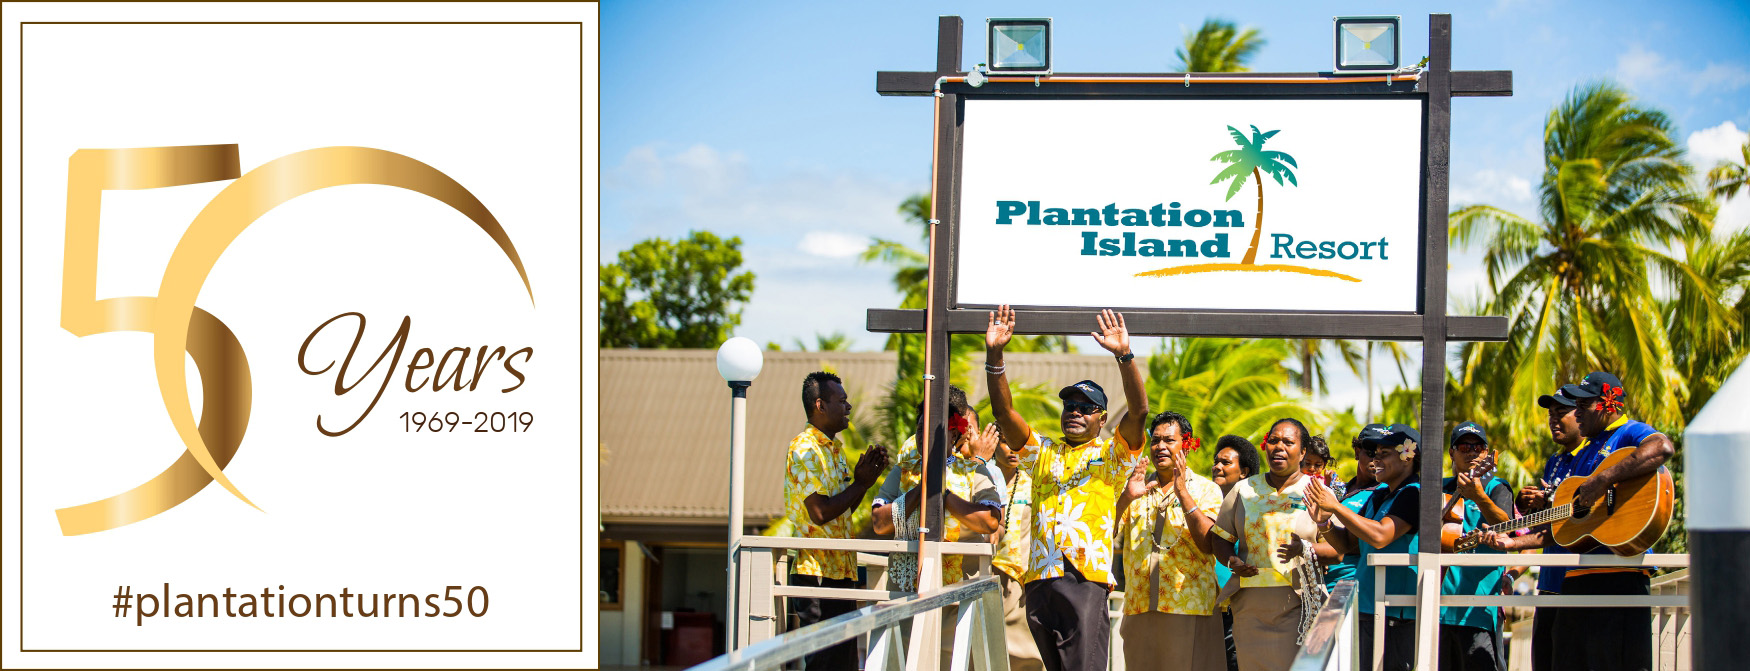 Plantation Turns 50